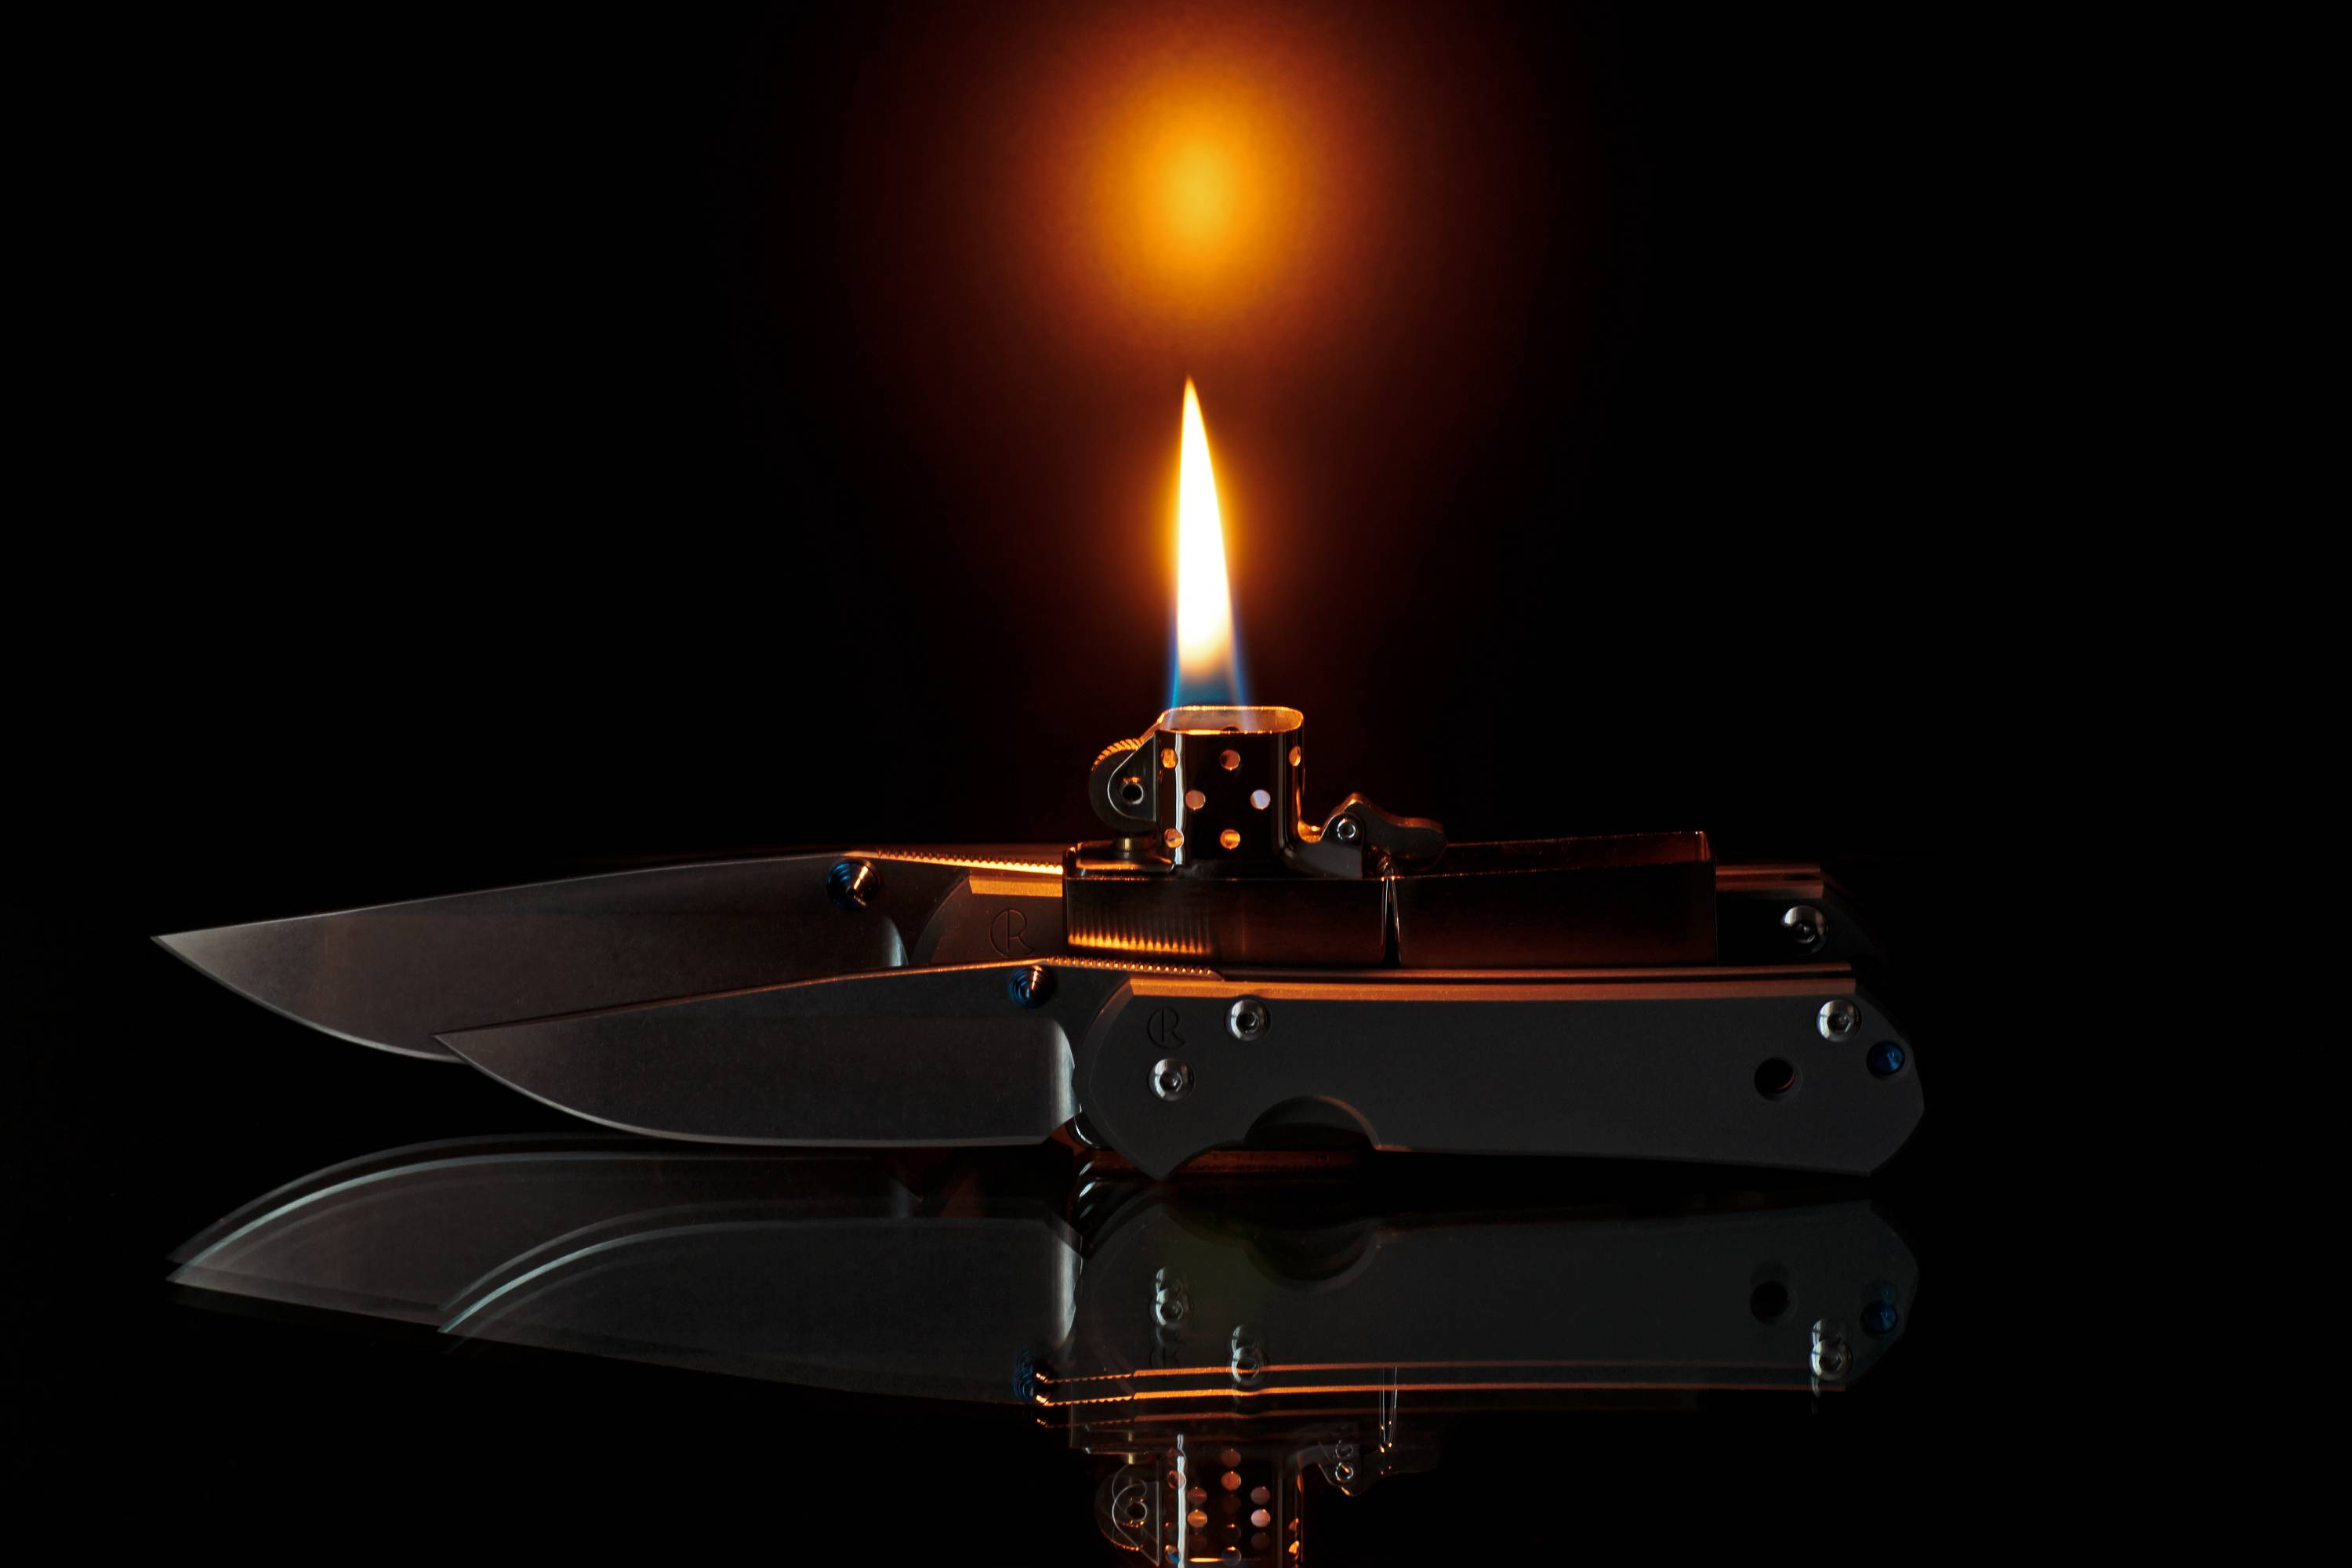 Zippo Lighters Flame Free Full HD Wallpaper...